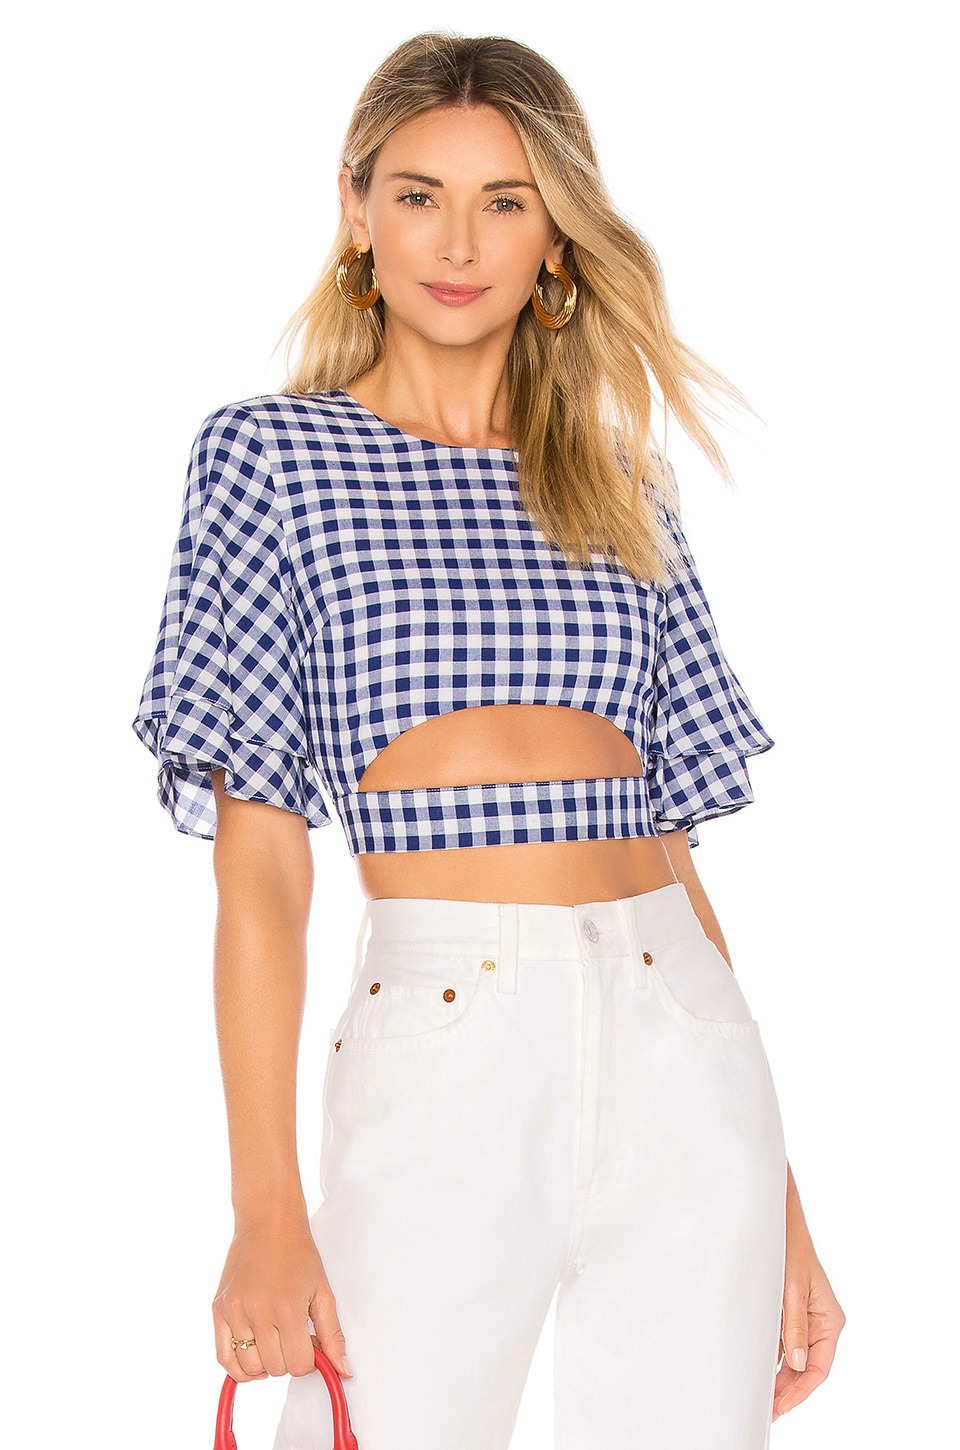 L'Academie The Lorenzo Blouse in Blue Gingham